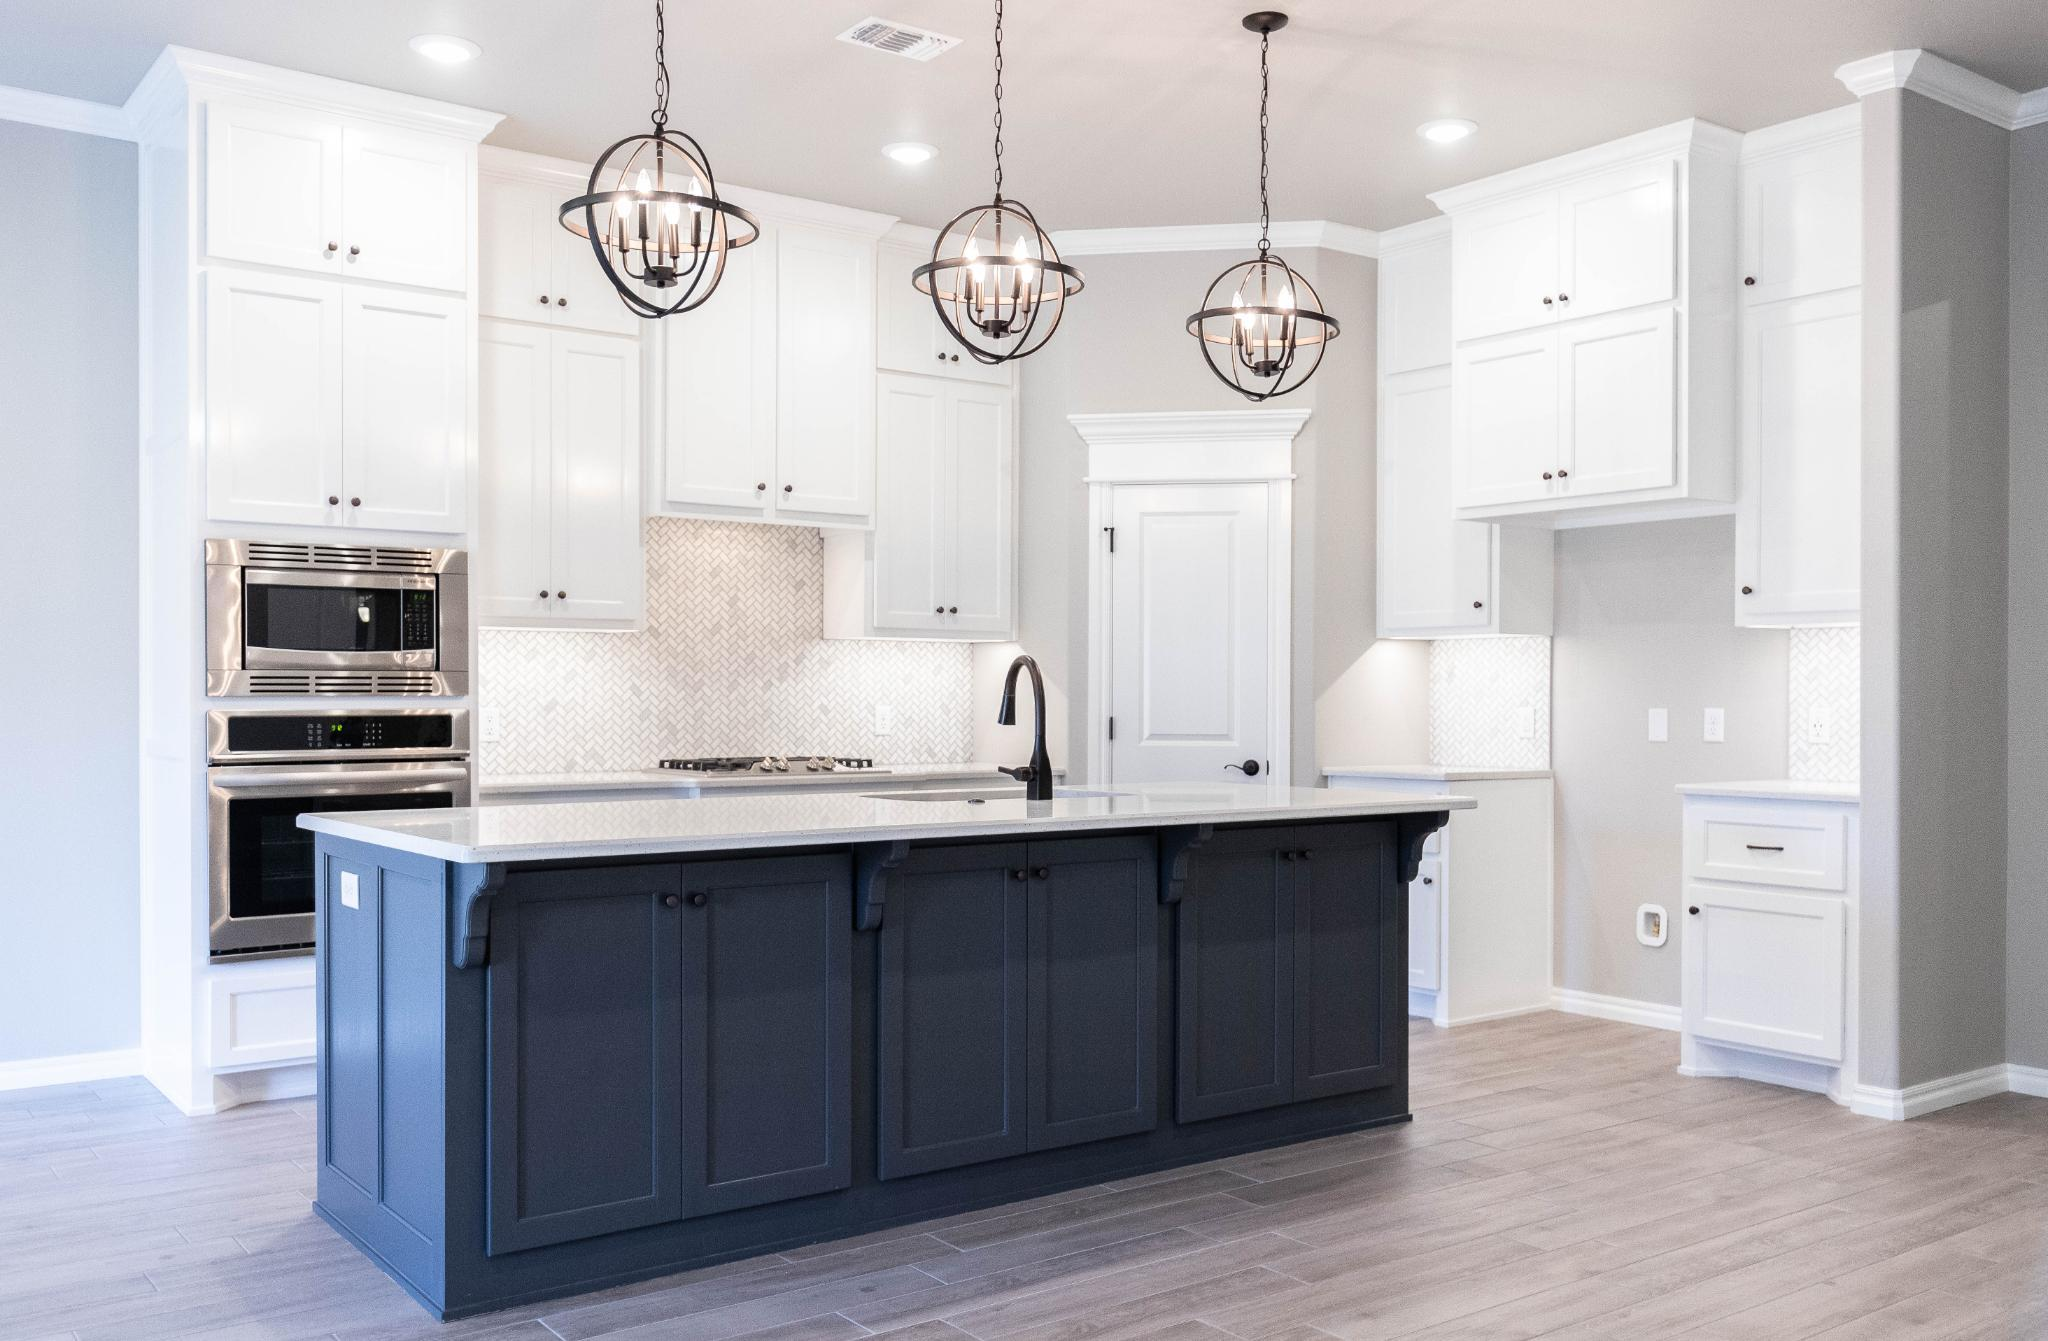 Kitchen featured in the Shiloh Half Bath By Homes By Taber in Oklahoma City, OK